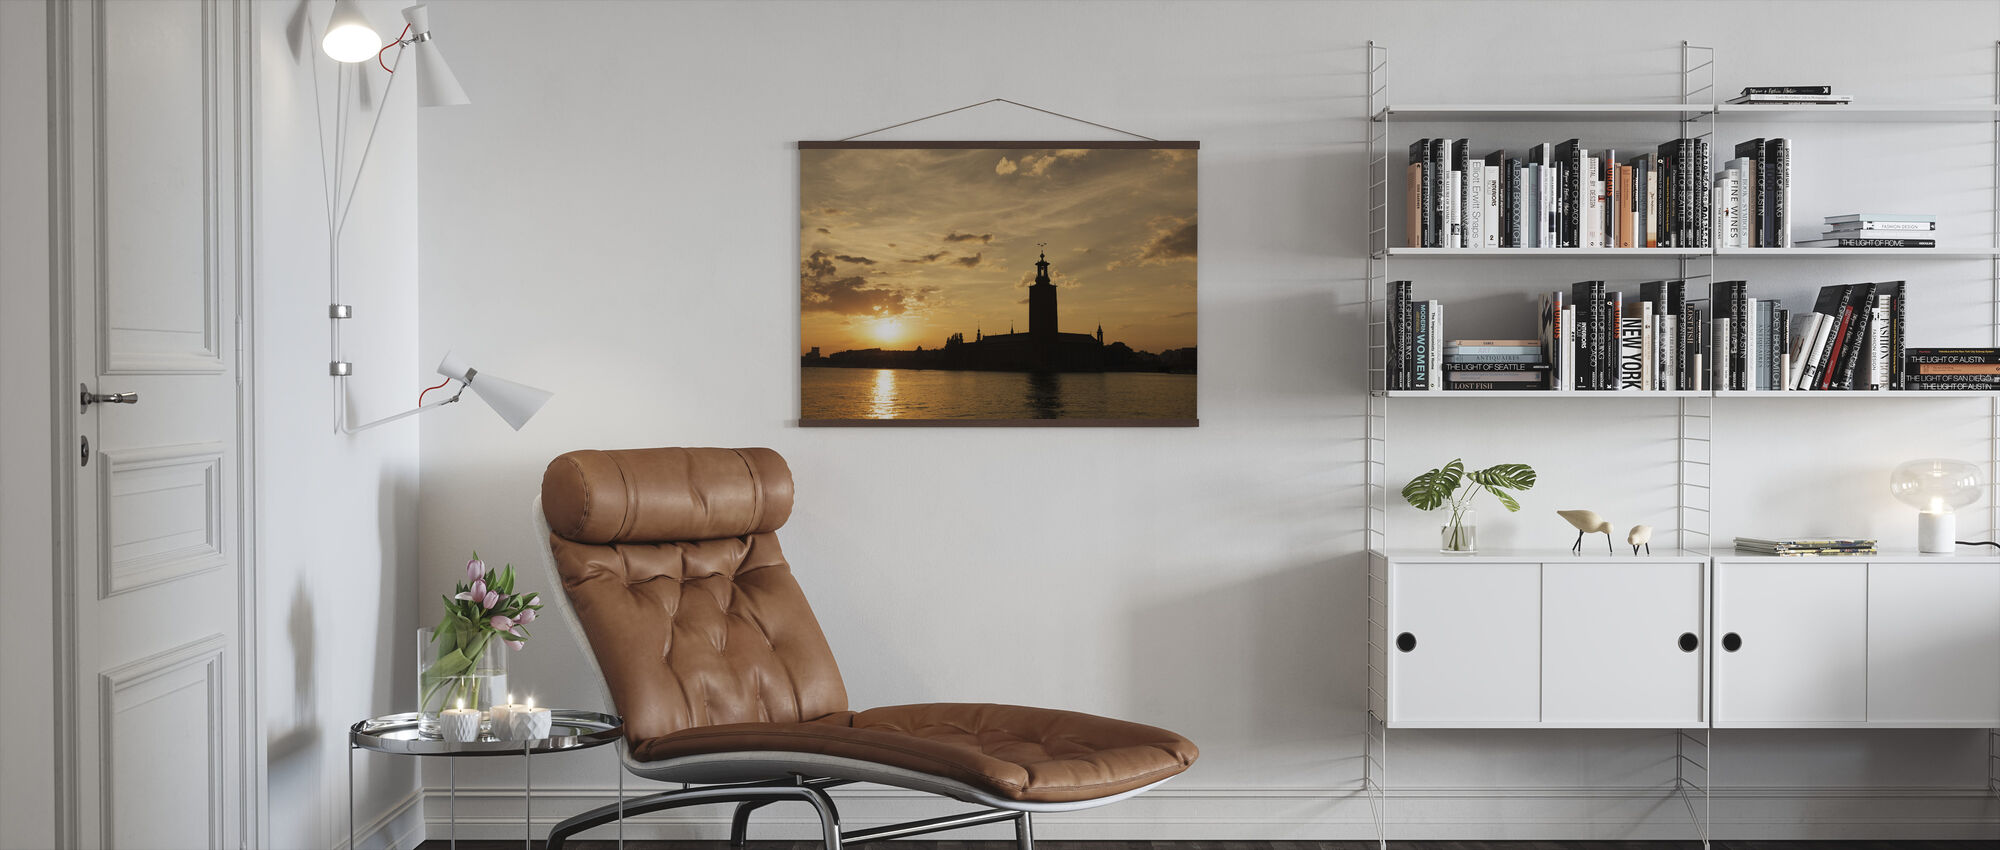 Stockholm City Hall in Silhouette - Poster - Living Room